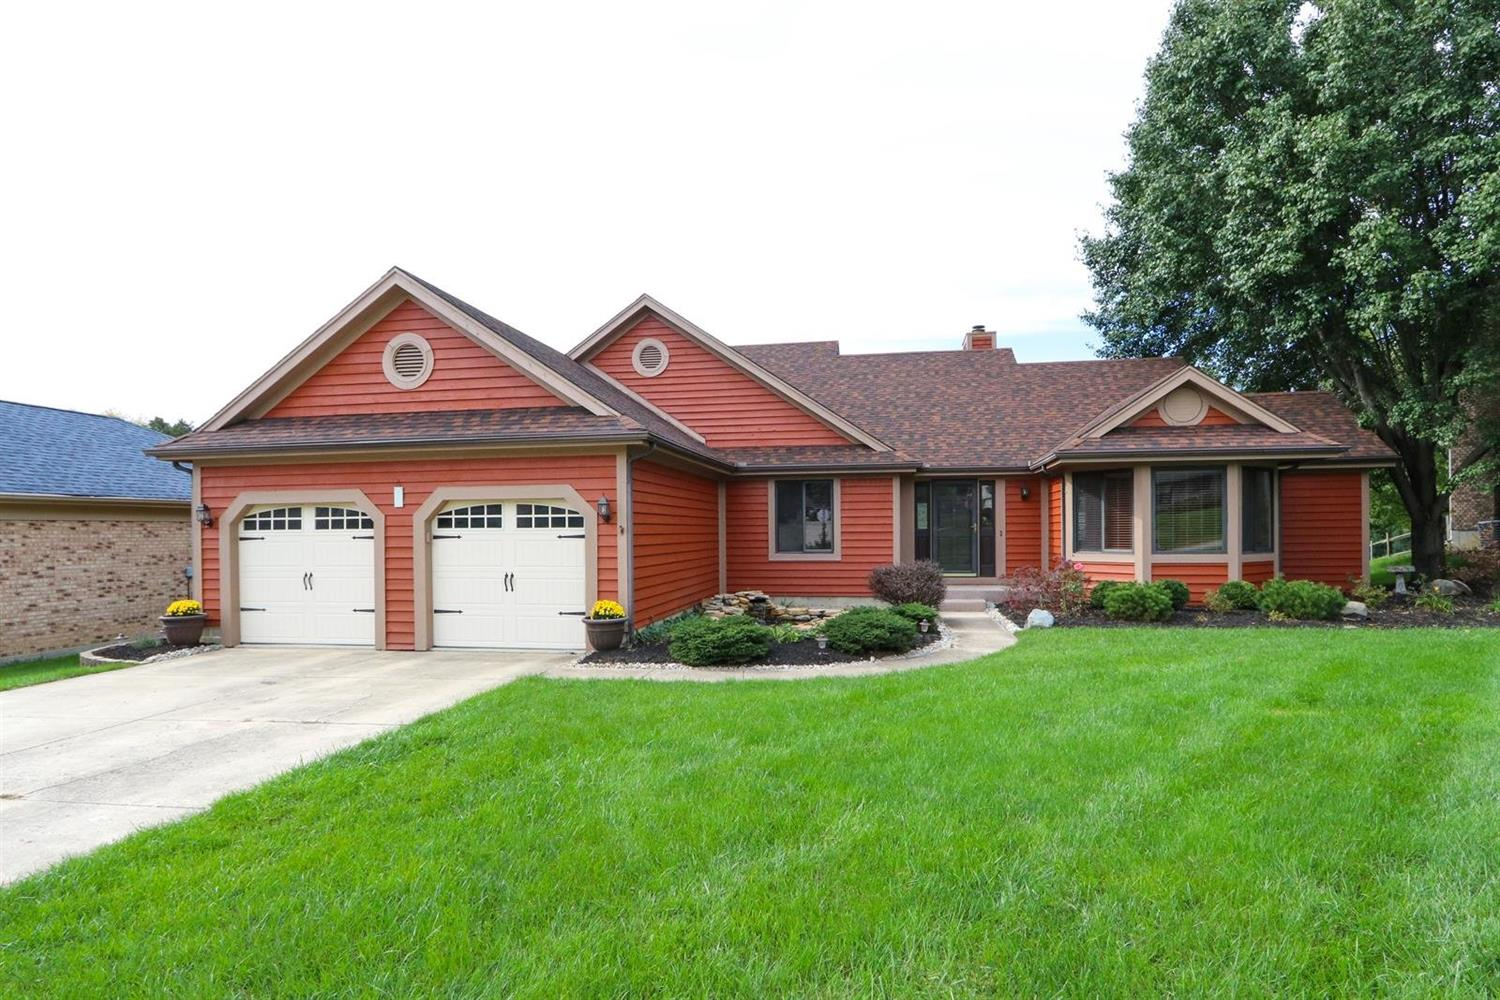 Property for sale at 305 Tanglewood Drive, Springboro,  OH 45066